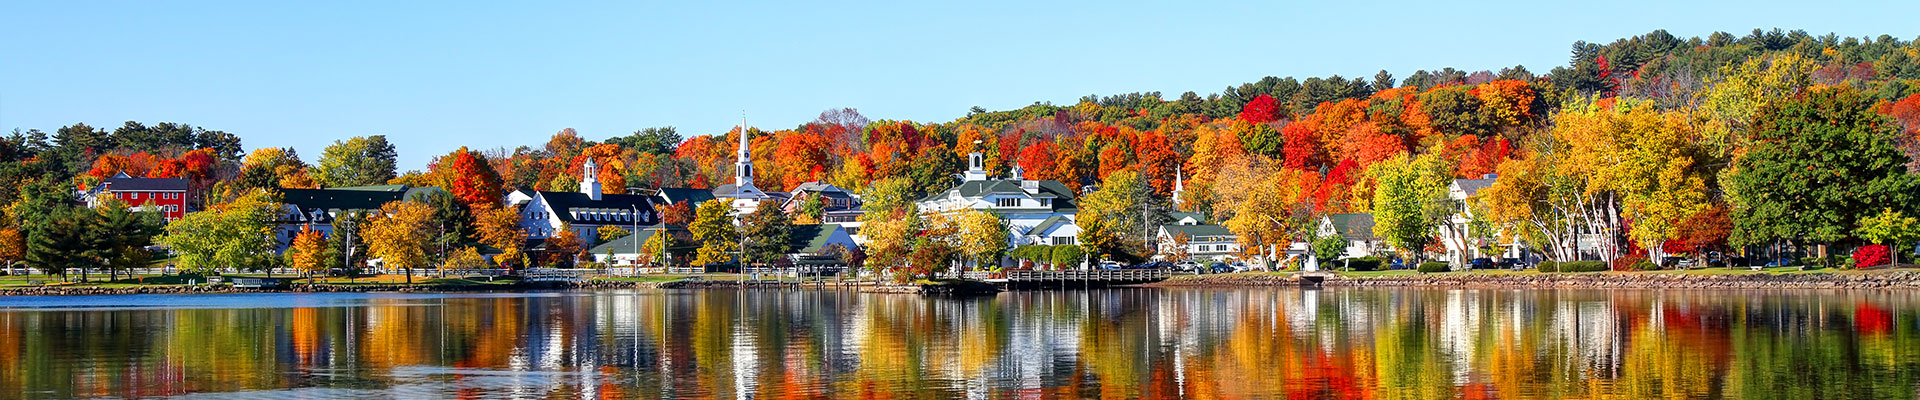 Fantasy RV Tours: 29 Day Autumn in New England (29UANF-091622)